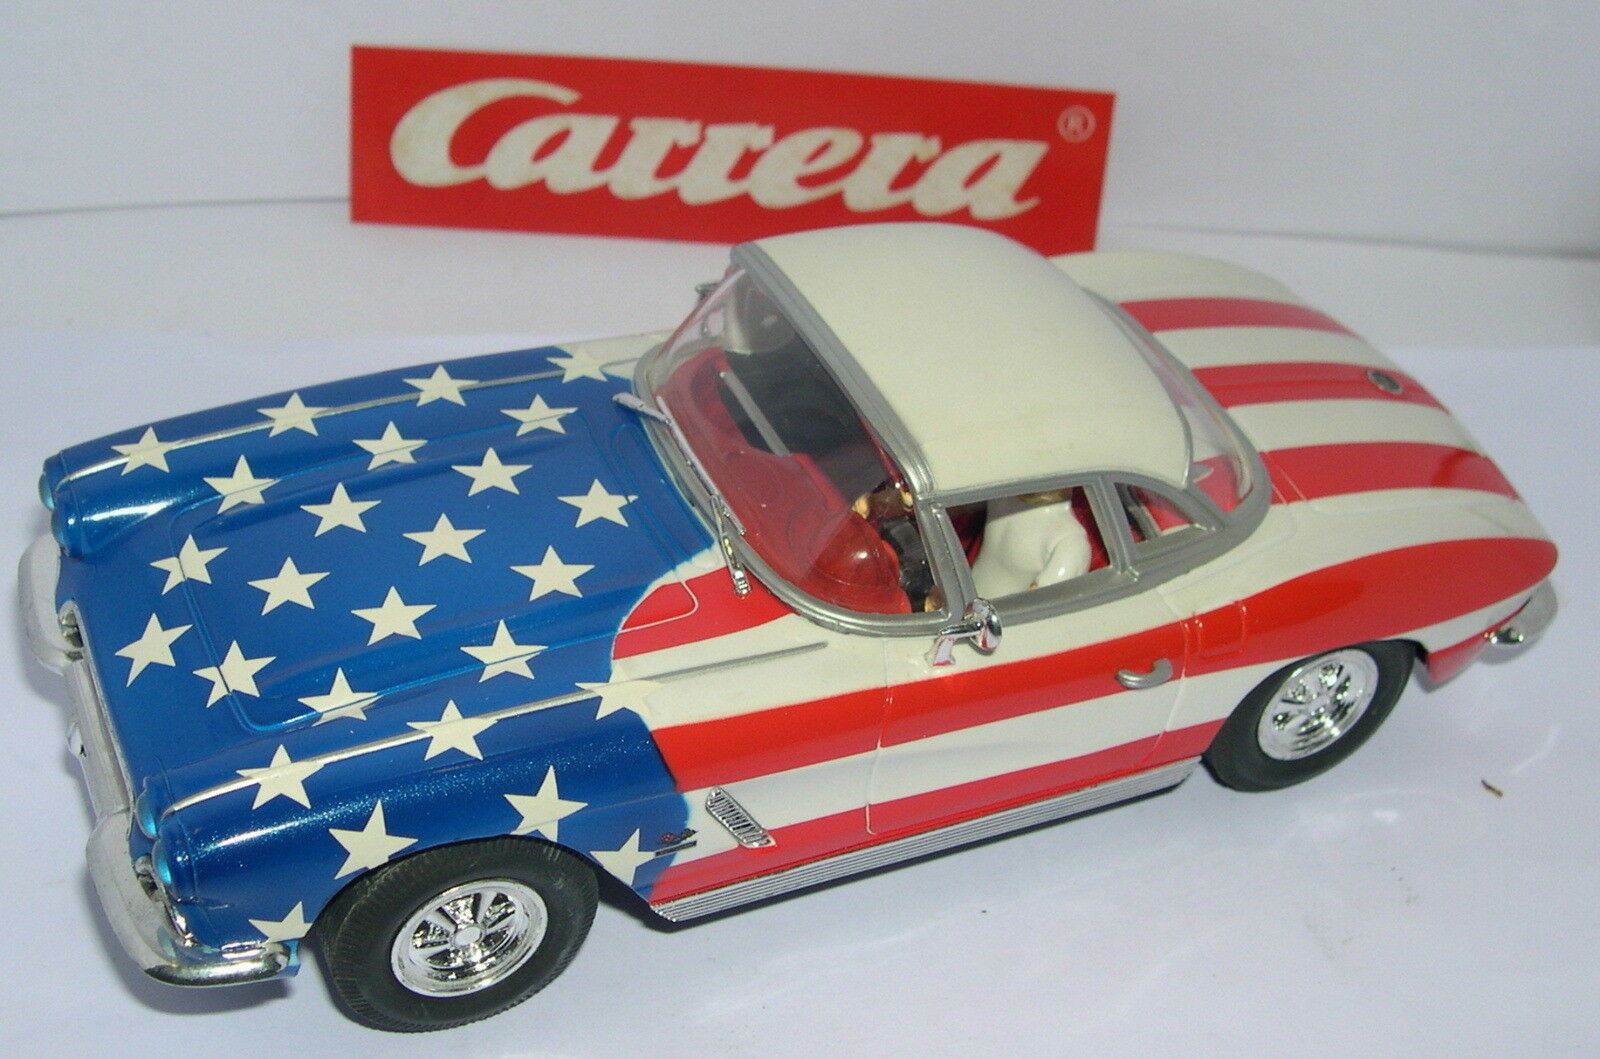 CARRERA EXCLUSIV 20490 CHEVROLET CORVETTE 1962 STARS AND STRIPES UNBOXED MINT